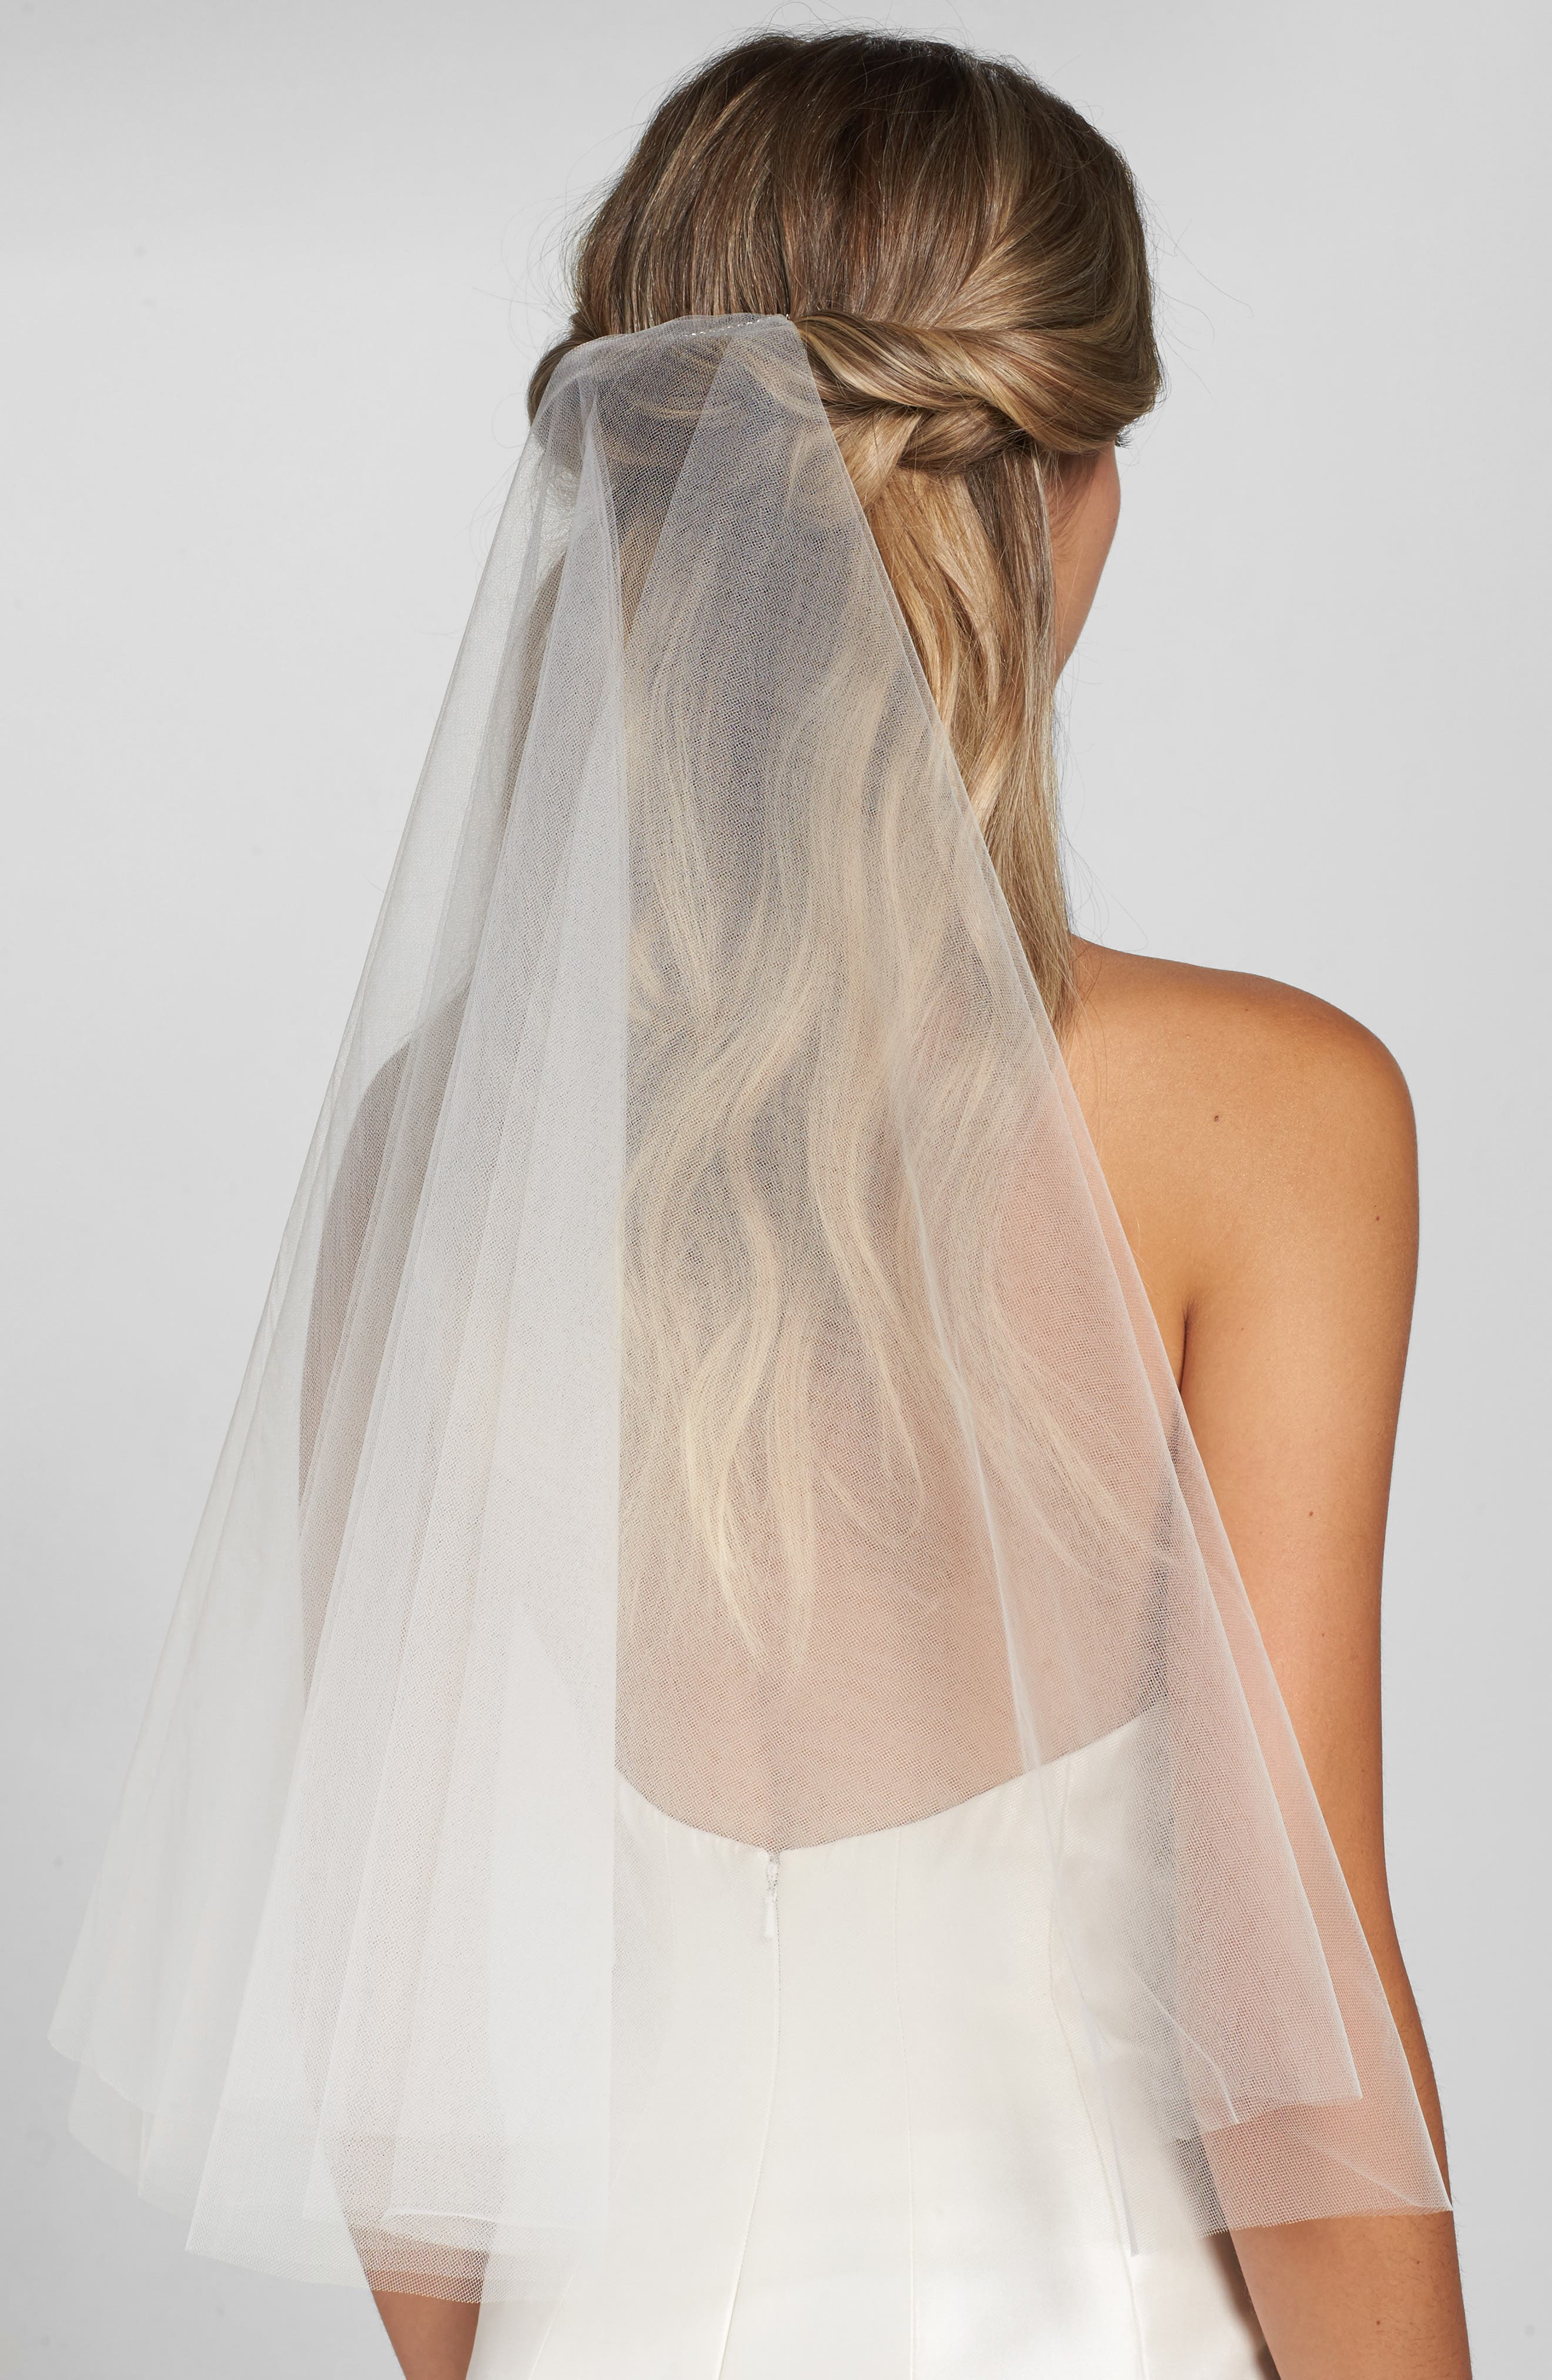 'Madeline' Two Tier Circle Veil,                             Main thumbnail 1, color,                             Ivory